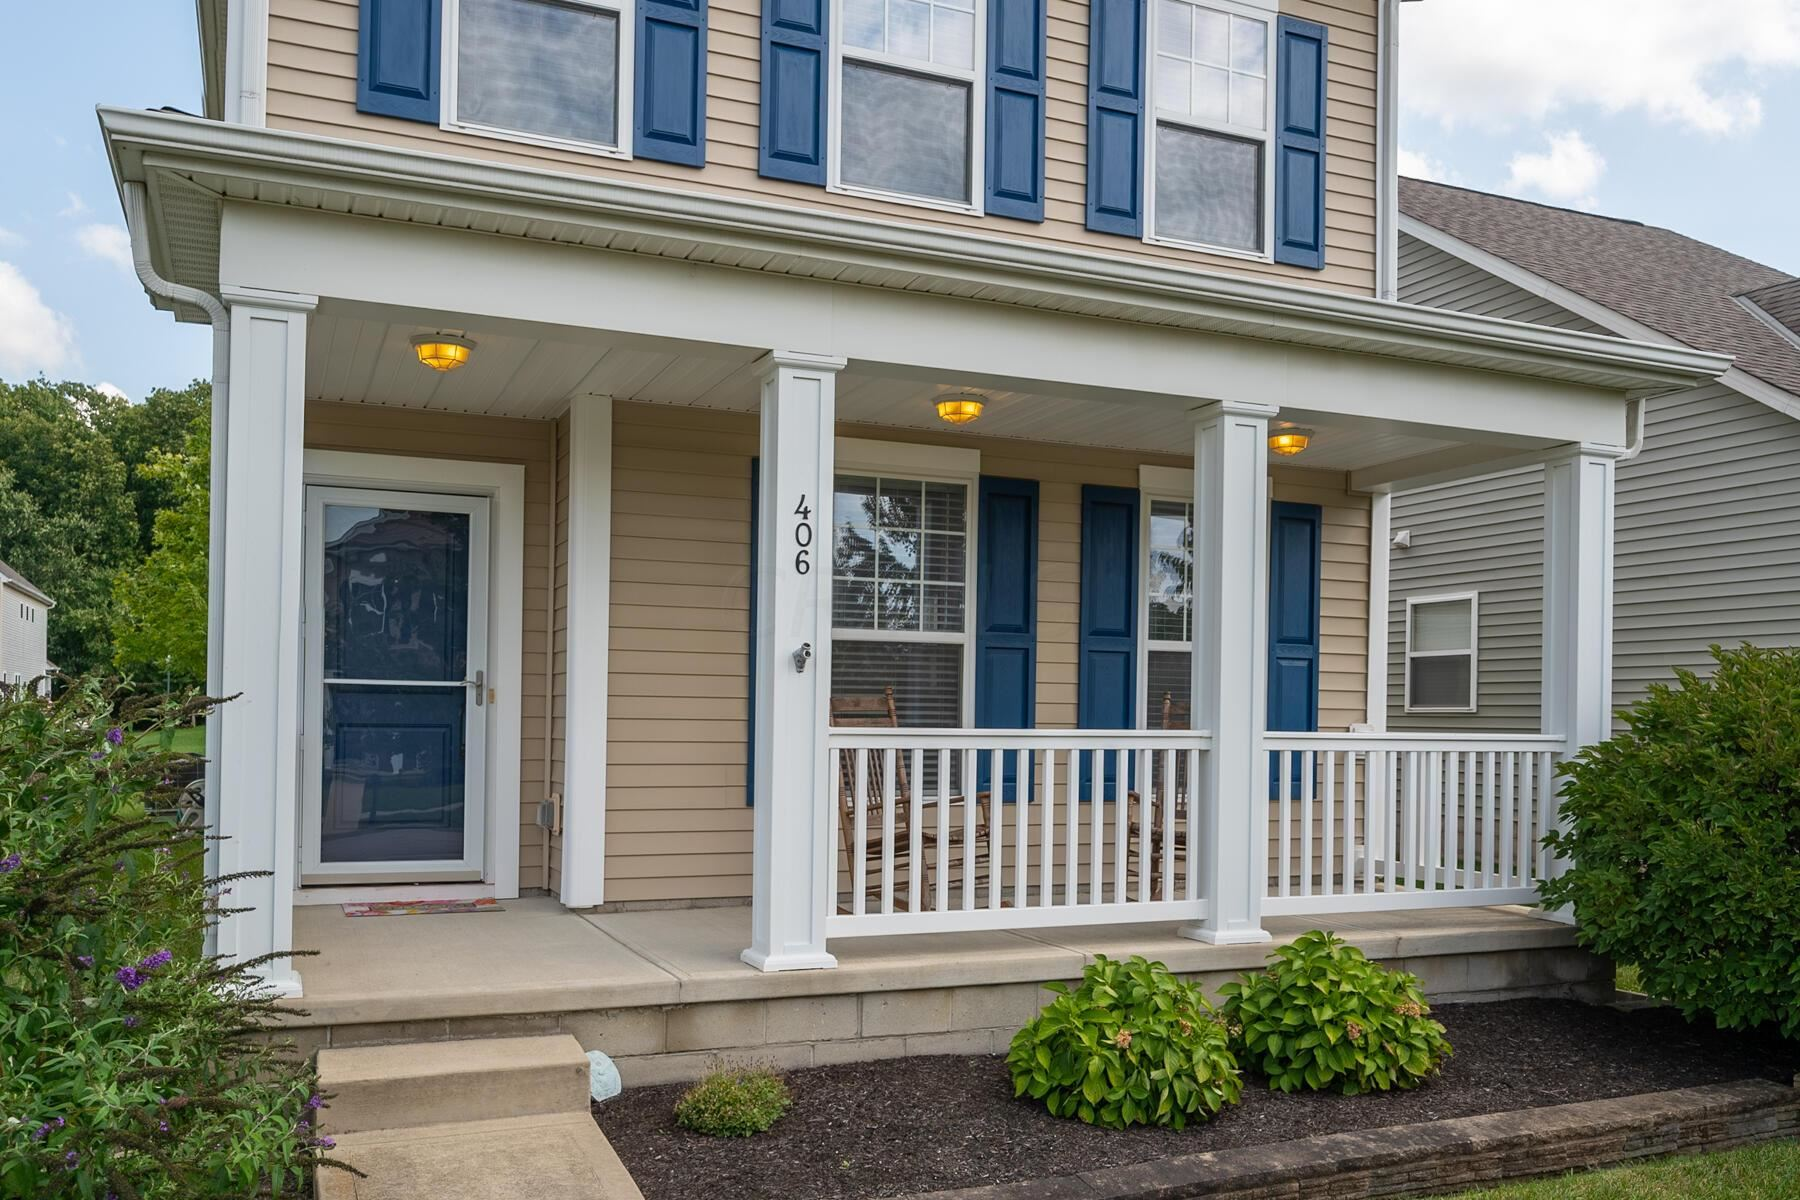 Photo of 406 Eshlure Court, Delaware, OH 43015 (MLS # 221036539)